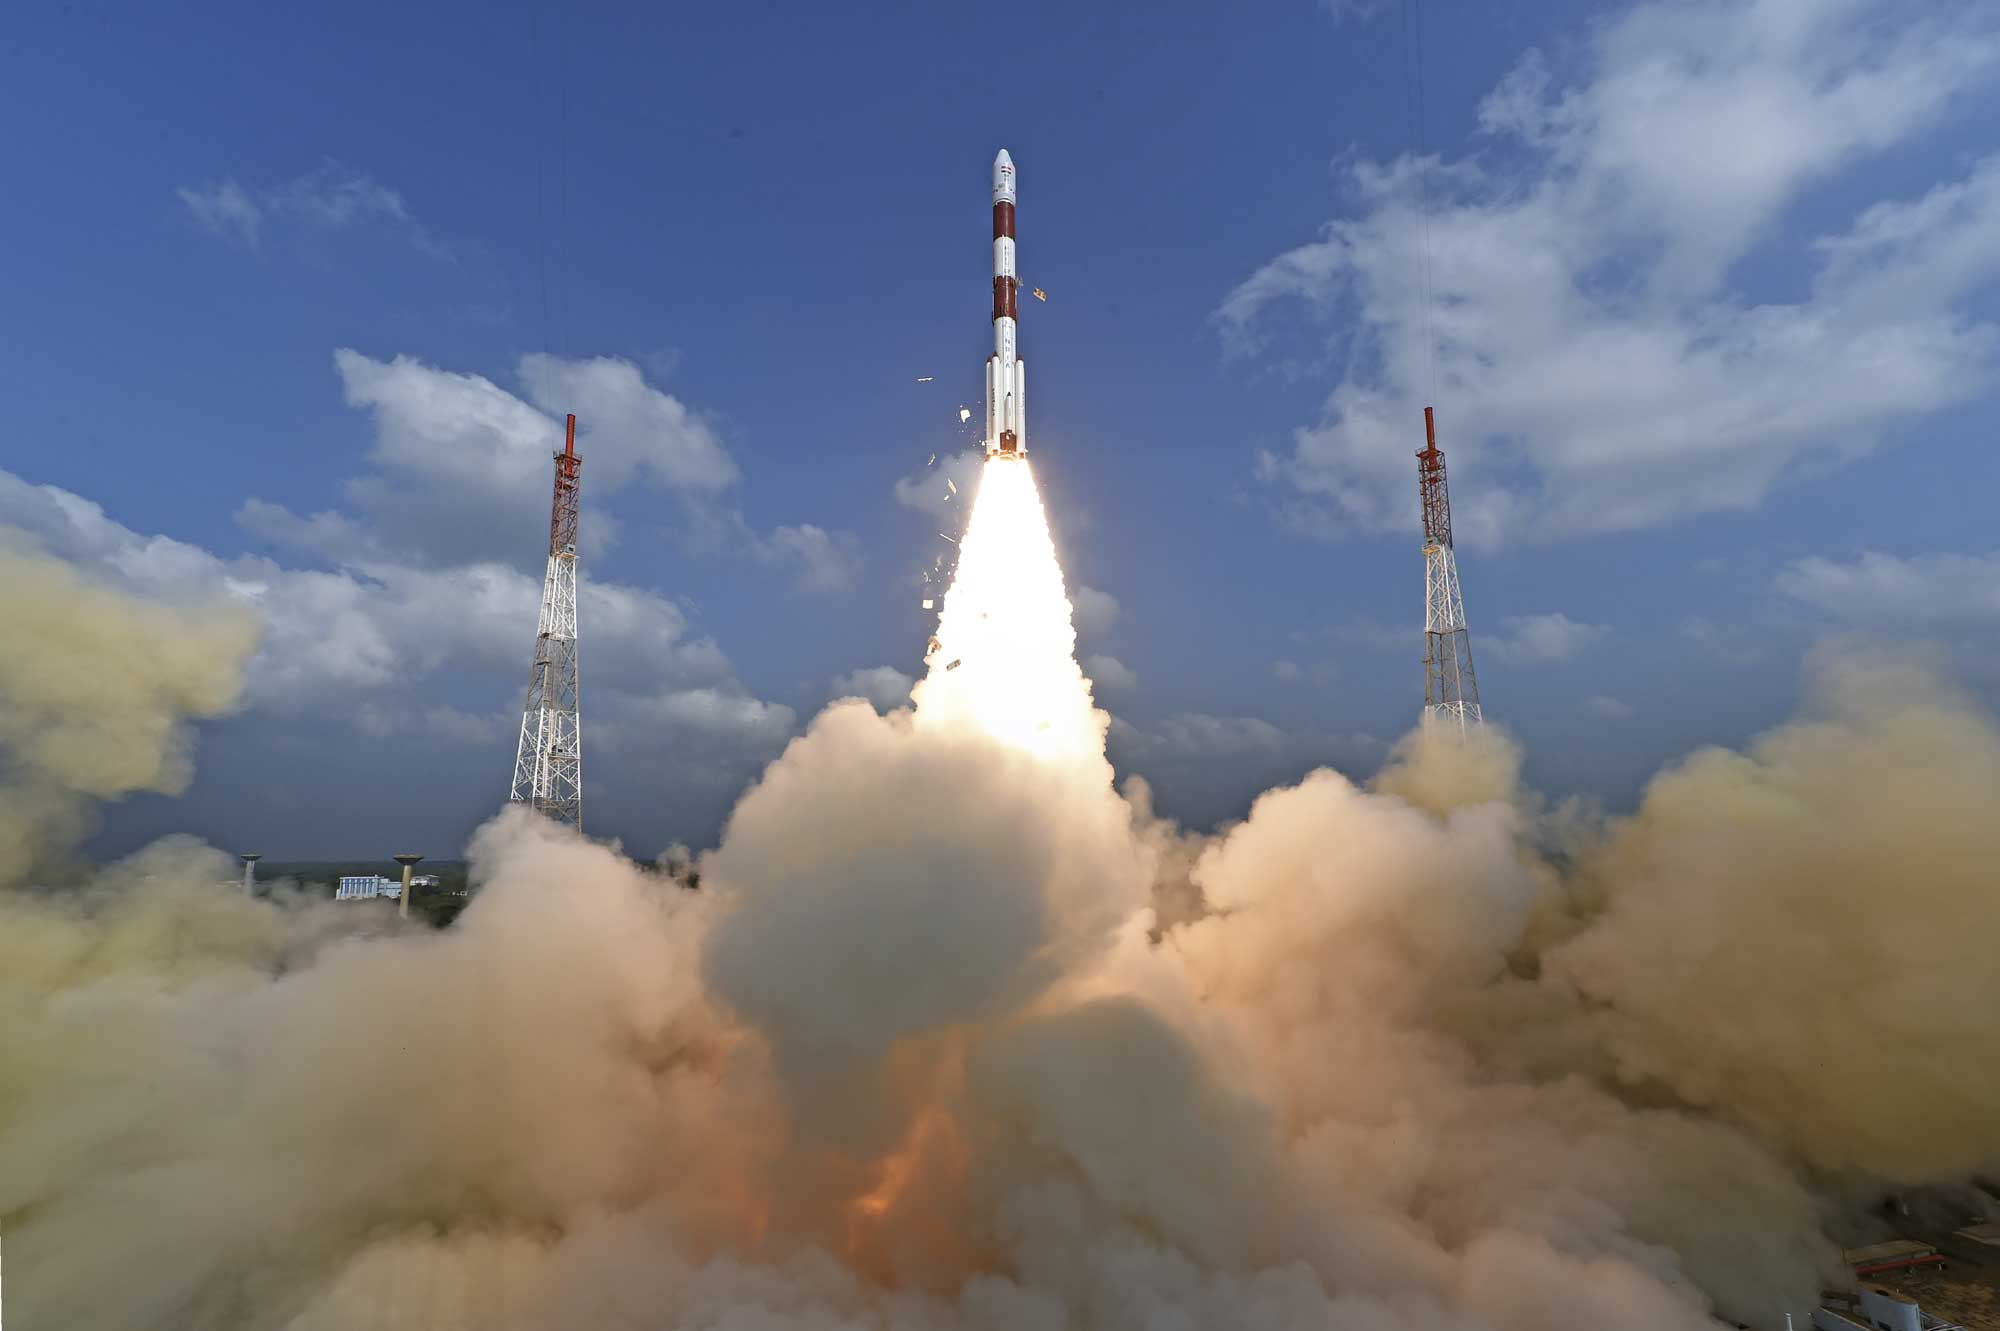 This photograph released by Indian Space Research Organization shows its polar satellite launch vehicle lifting off from a launch pad at the Satish Dhawan Space Centre in India, Wednesday, Feb.15, 2017. [Photo: Indian Space Research Organization via AP]